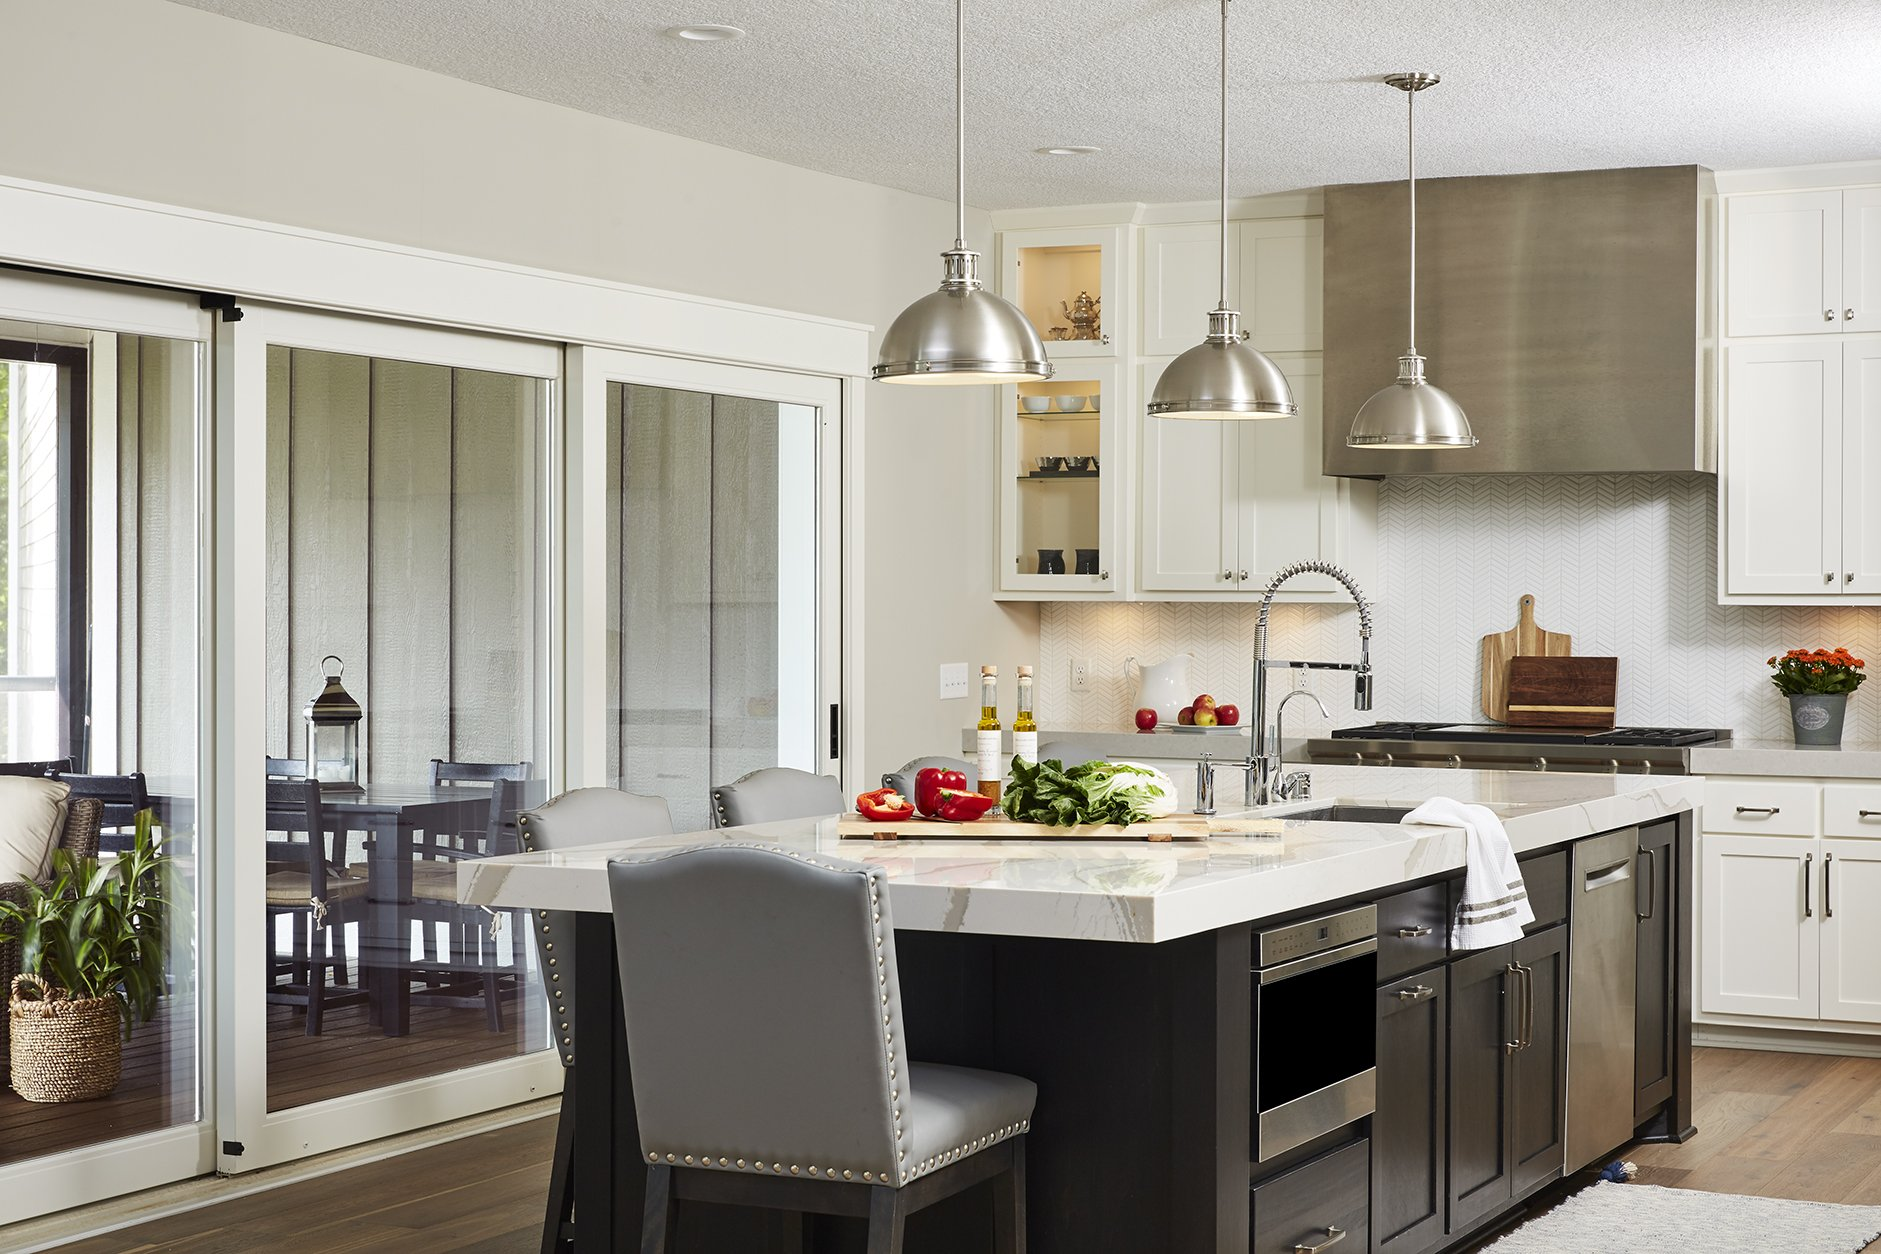 With new sliding glass doors, the kitchen immediately felt more open and accessible to the rest of the home.